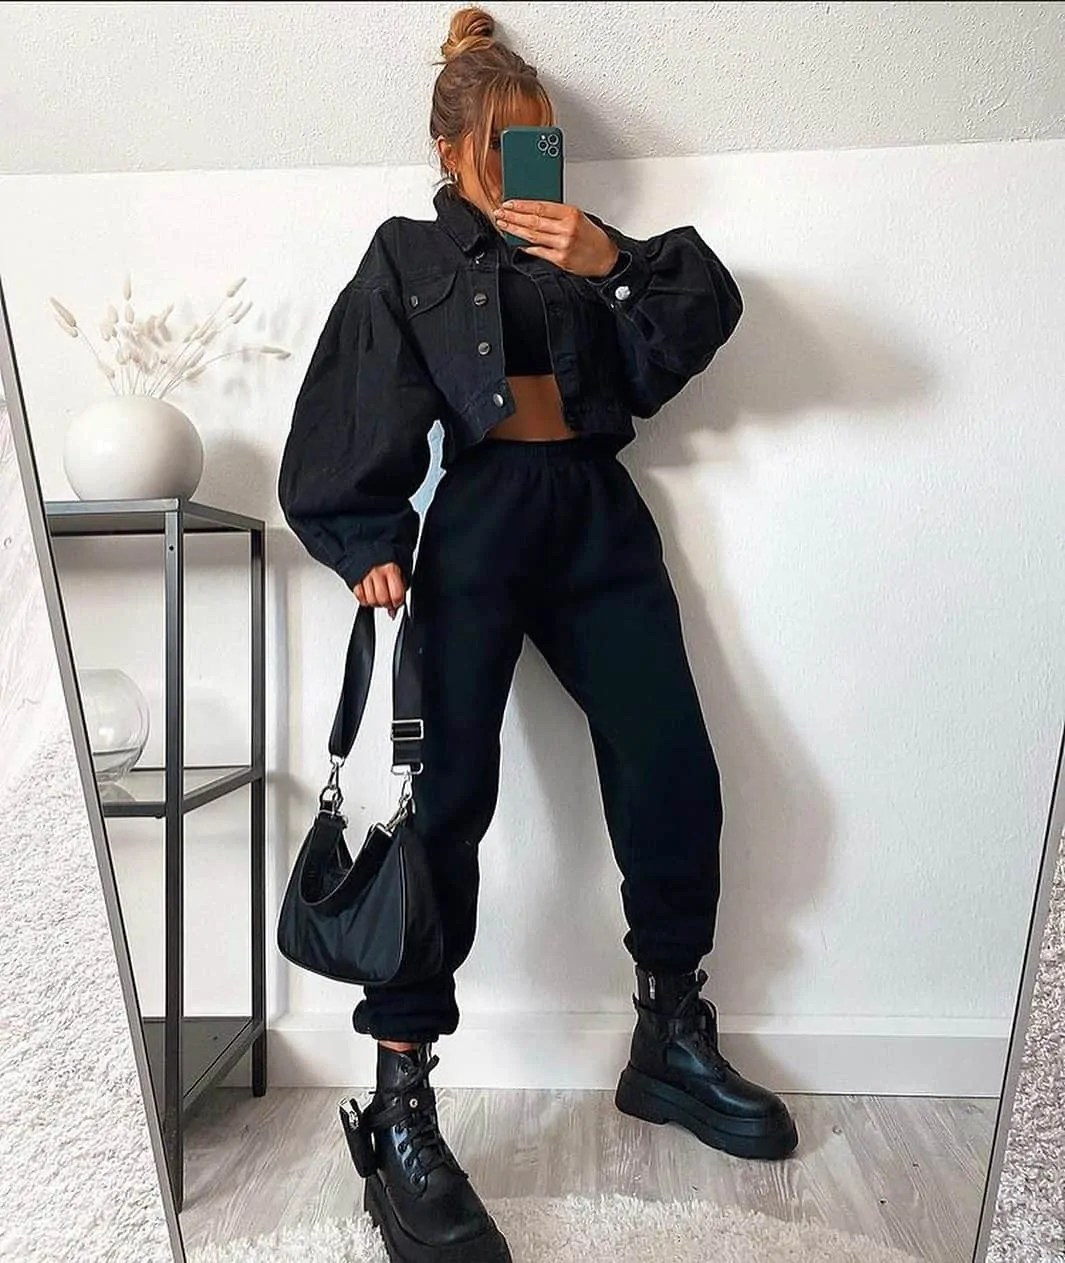 100+ fashion inspo outfits that you have to see no matter what your style is 89